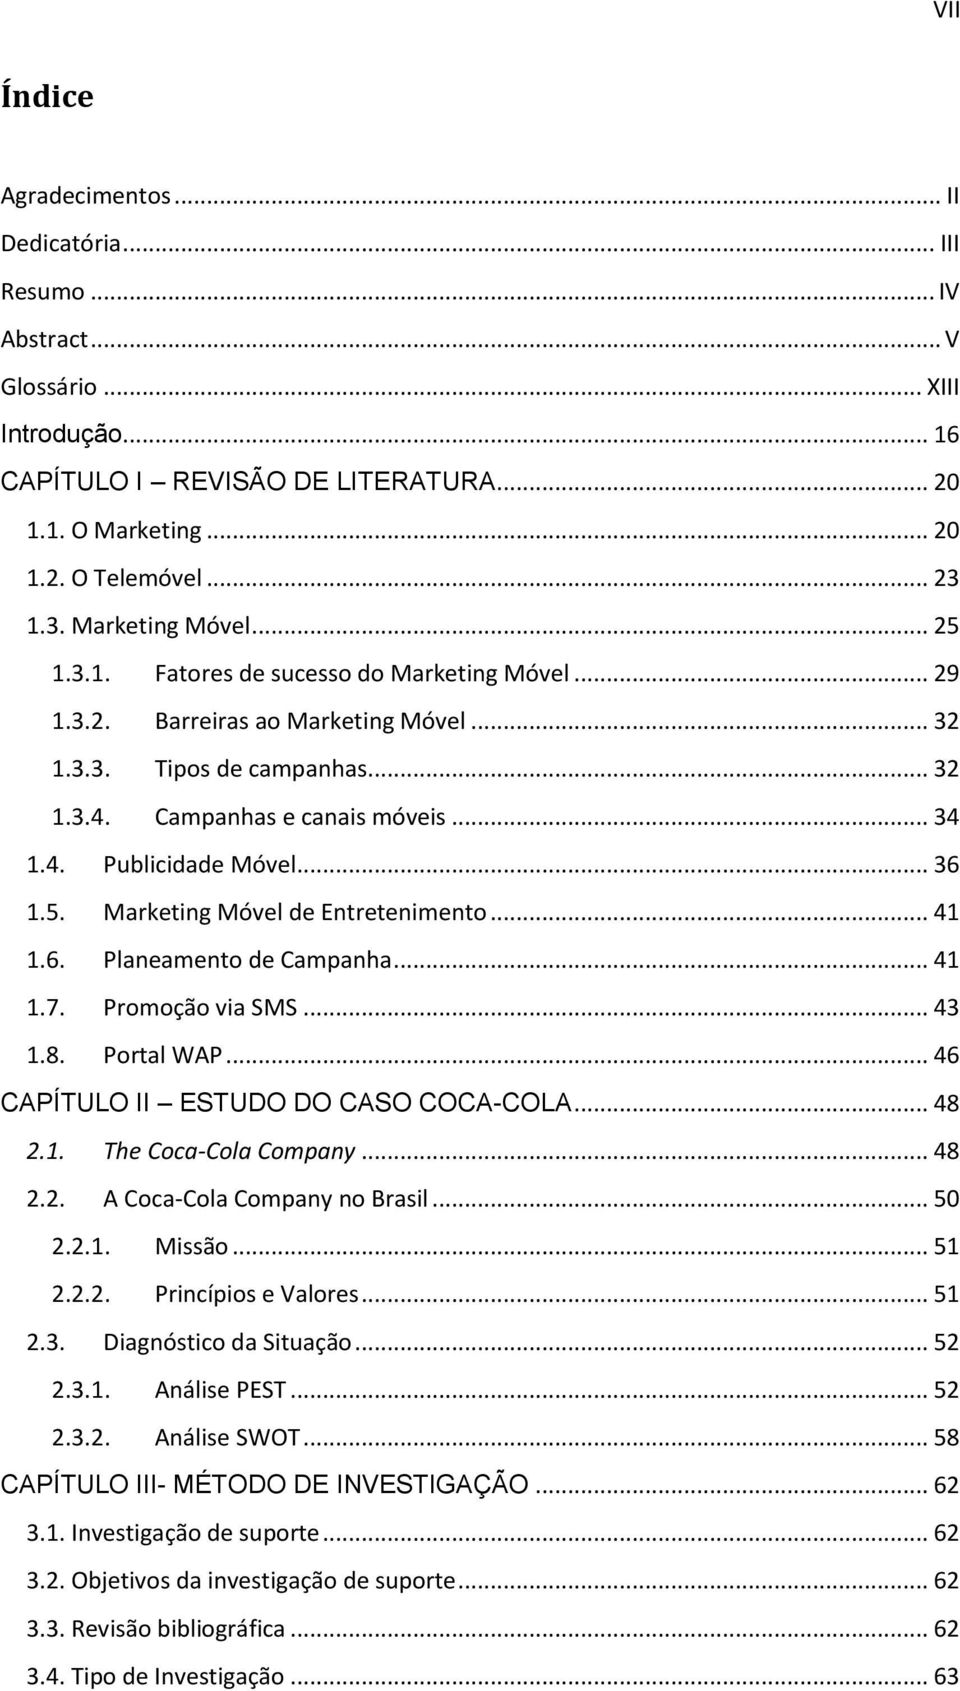 .. 36 1.5. Marketing Móvel de Entreteniment... 41 1.6. Planeament de Campanha... 41 1.7. Prmçã via SMS... 43 1.8. Prtal WAP... 46 CAPÍTULO II ESTUDO DO CASO COCA-COLA... 48 2.1. The Cca-Cla Cmpany.